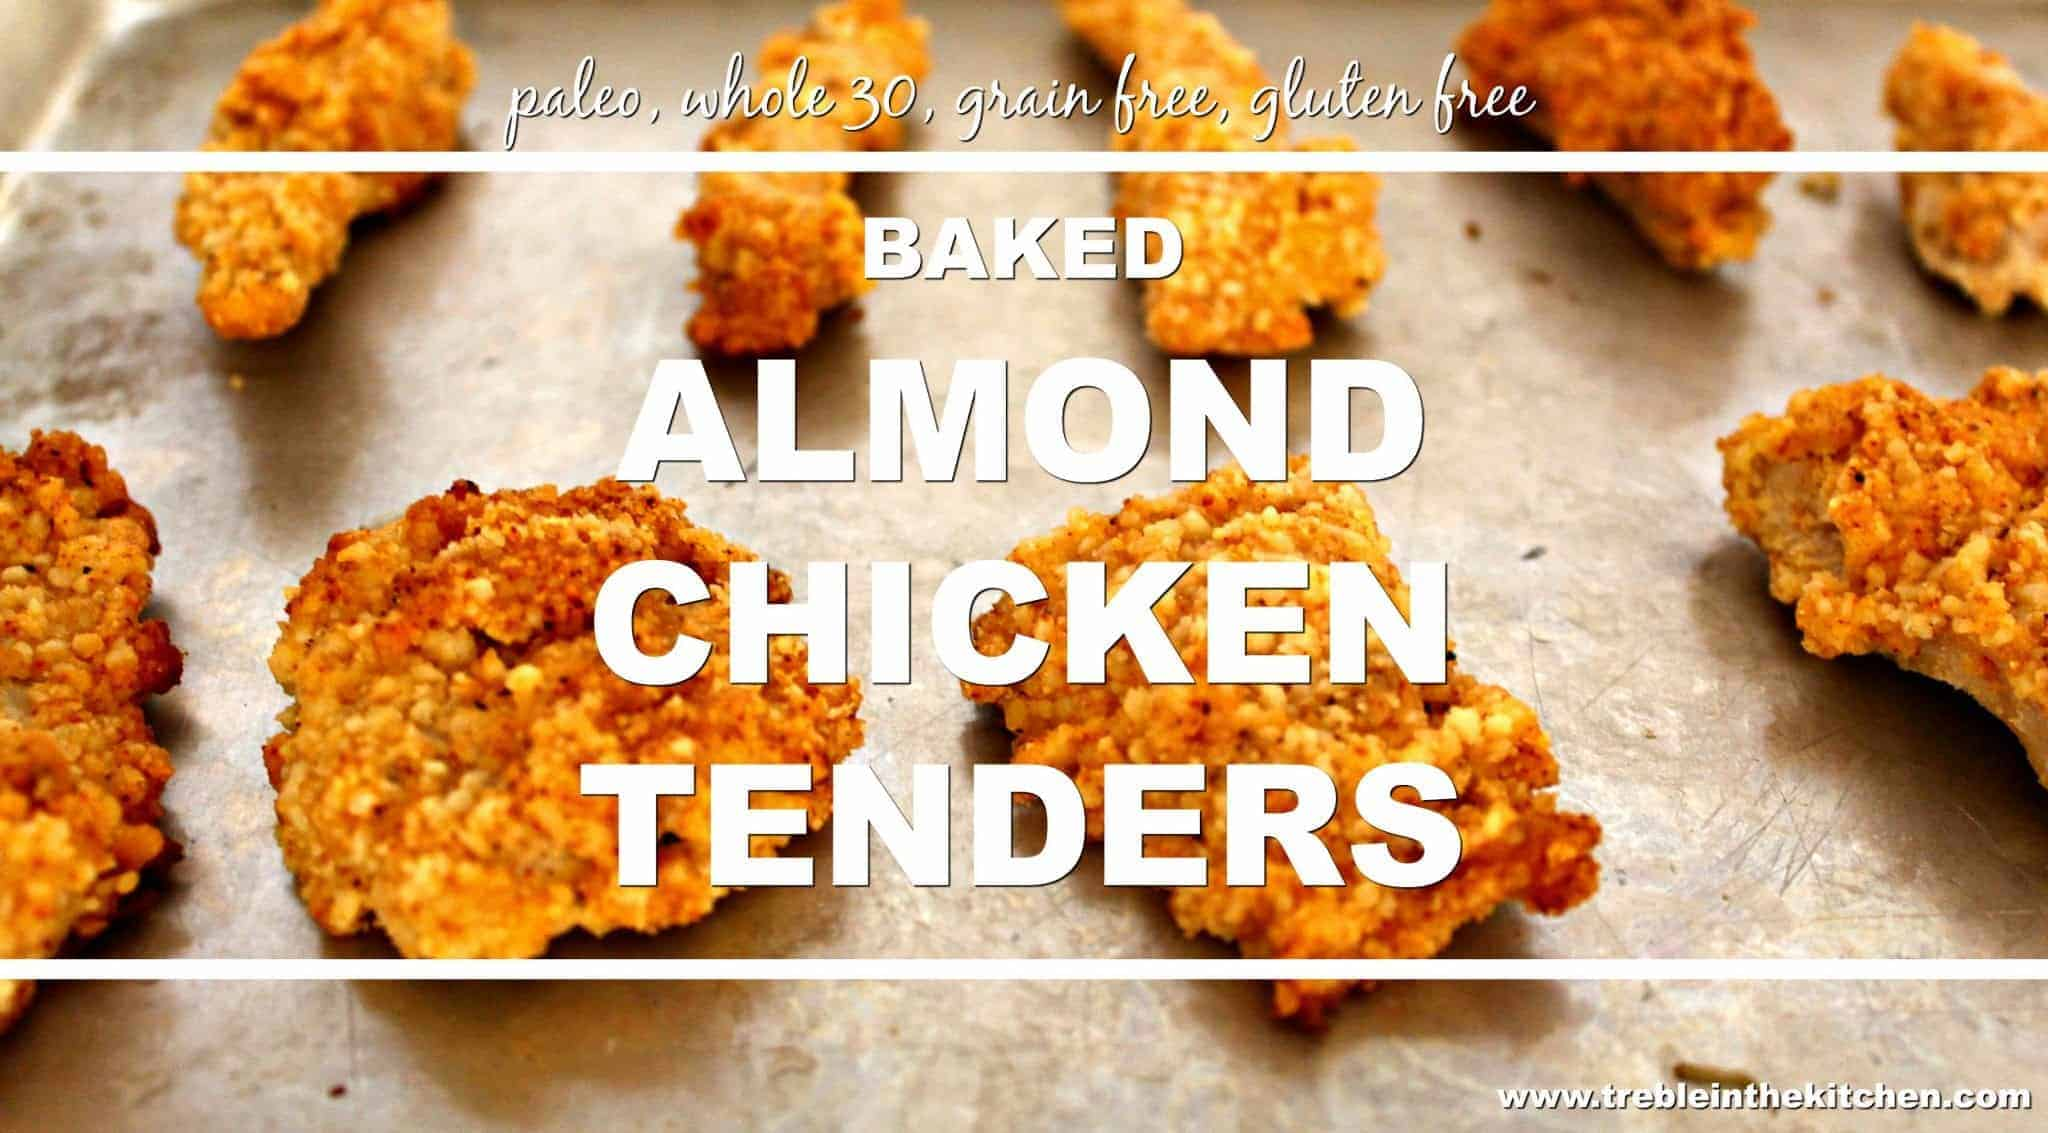 Baked Almond Chicken Tenders from Treble in the Kitchen paleo-friendly, gluten free, grain free, whole 30 compliant